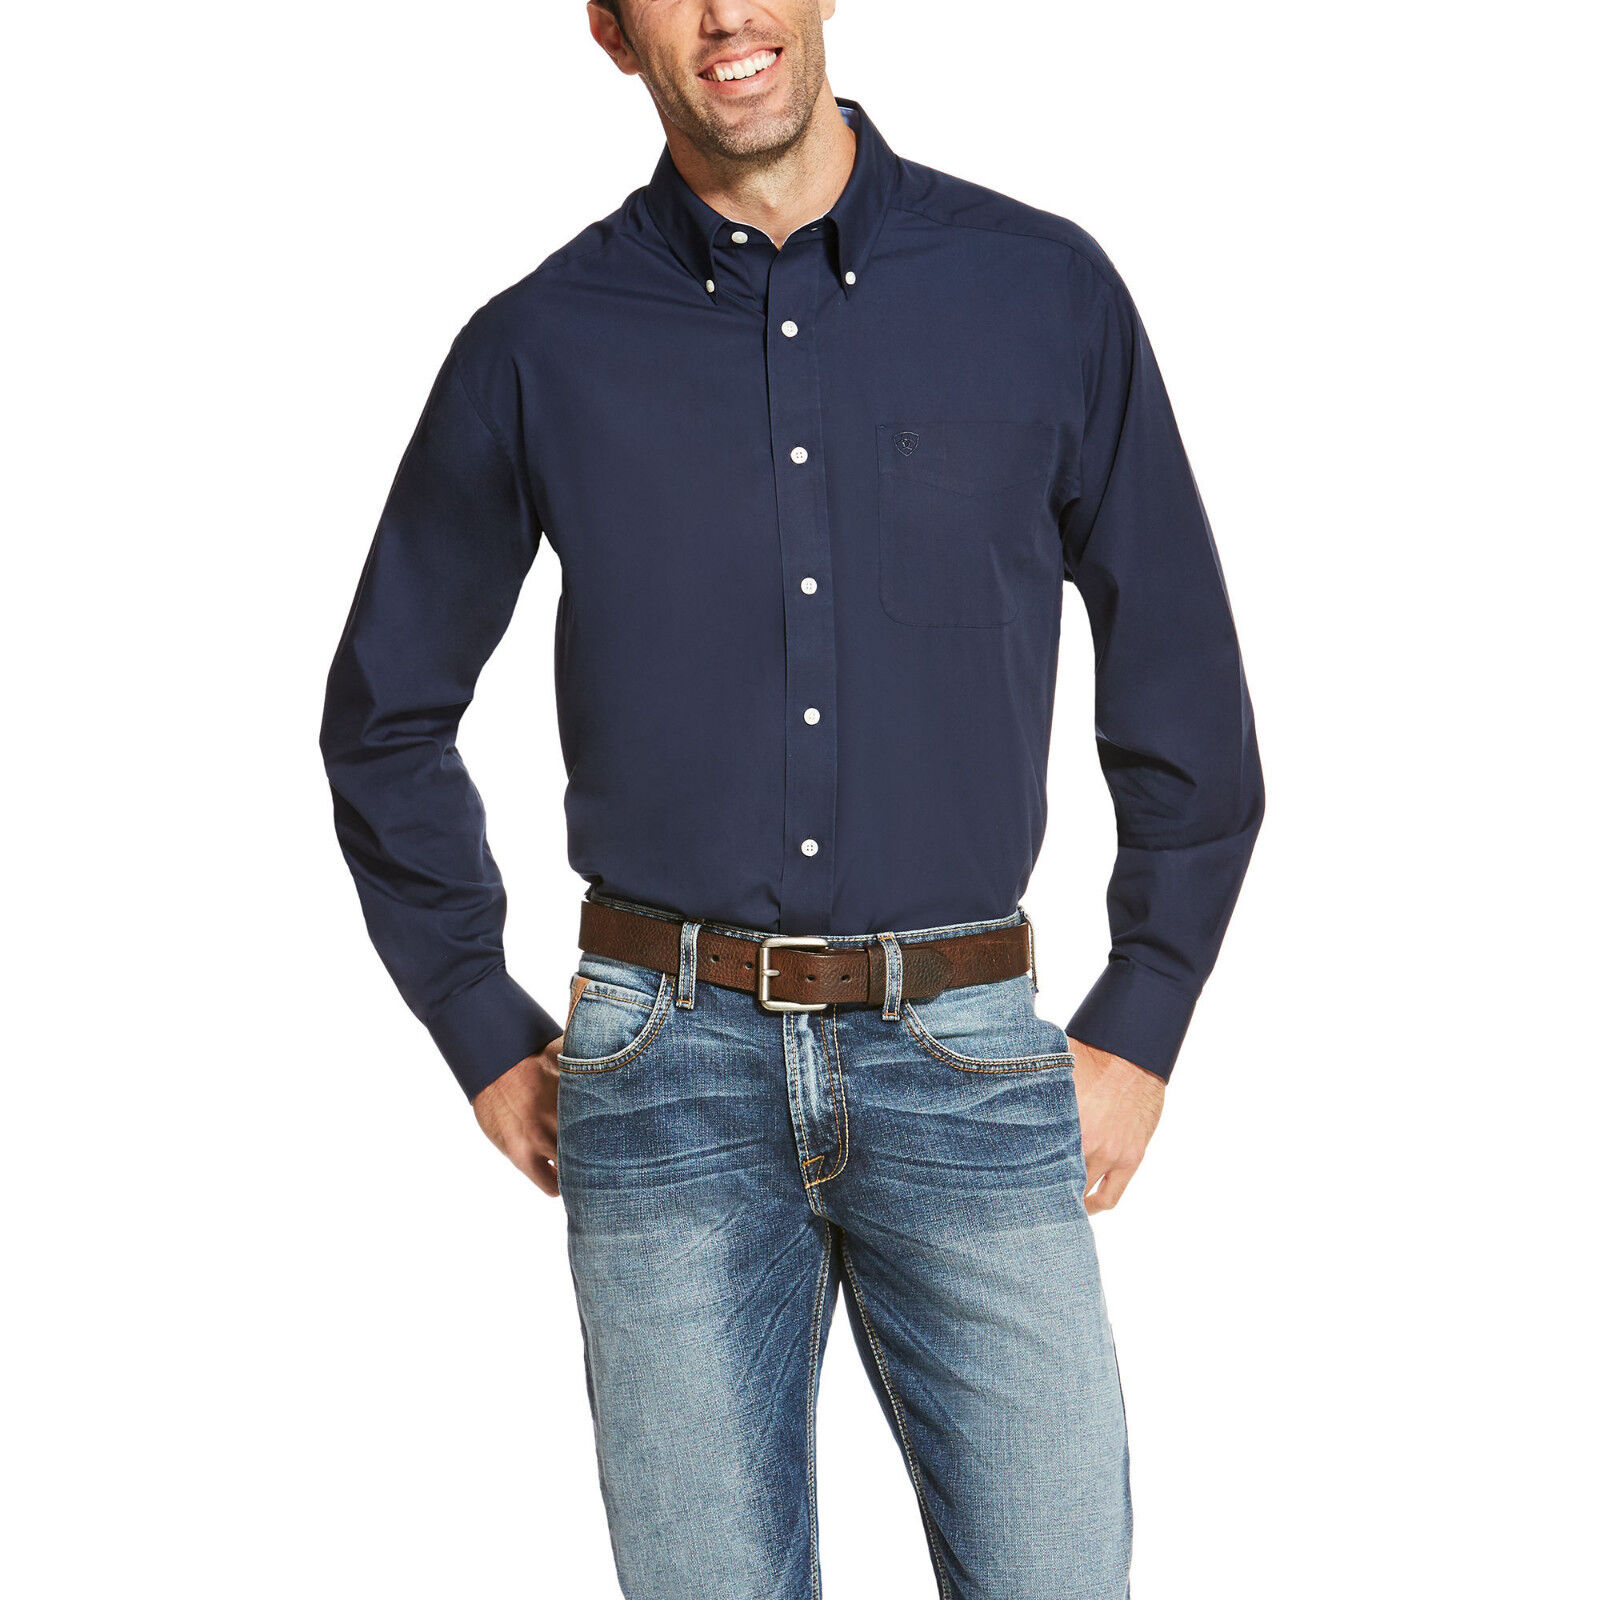 Ariat® Men's Wrinkle Free Navy bluee Long Sleeve Button Shirt 10020330